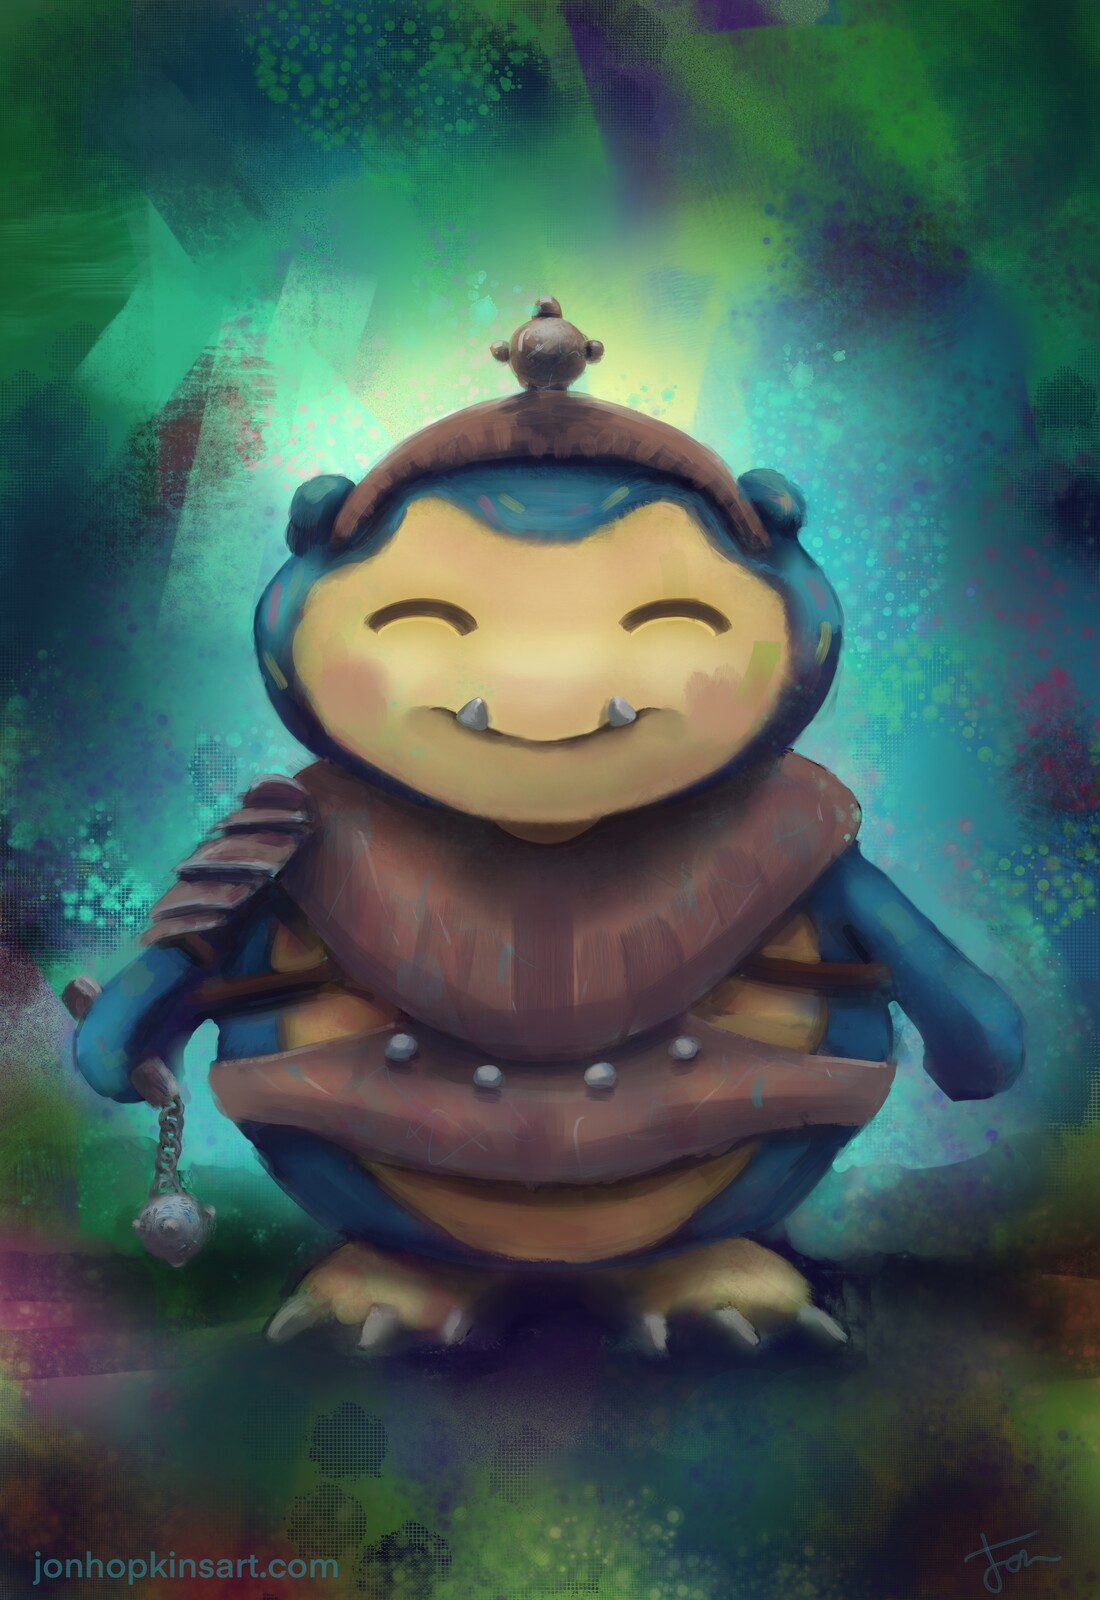 Snorlax the poke-knight no.2 in the series.